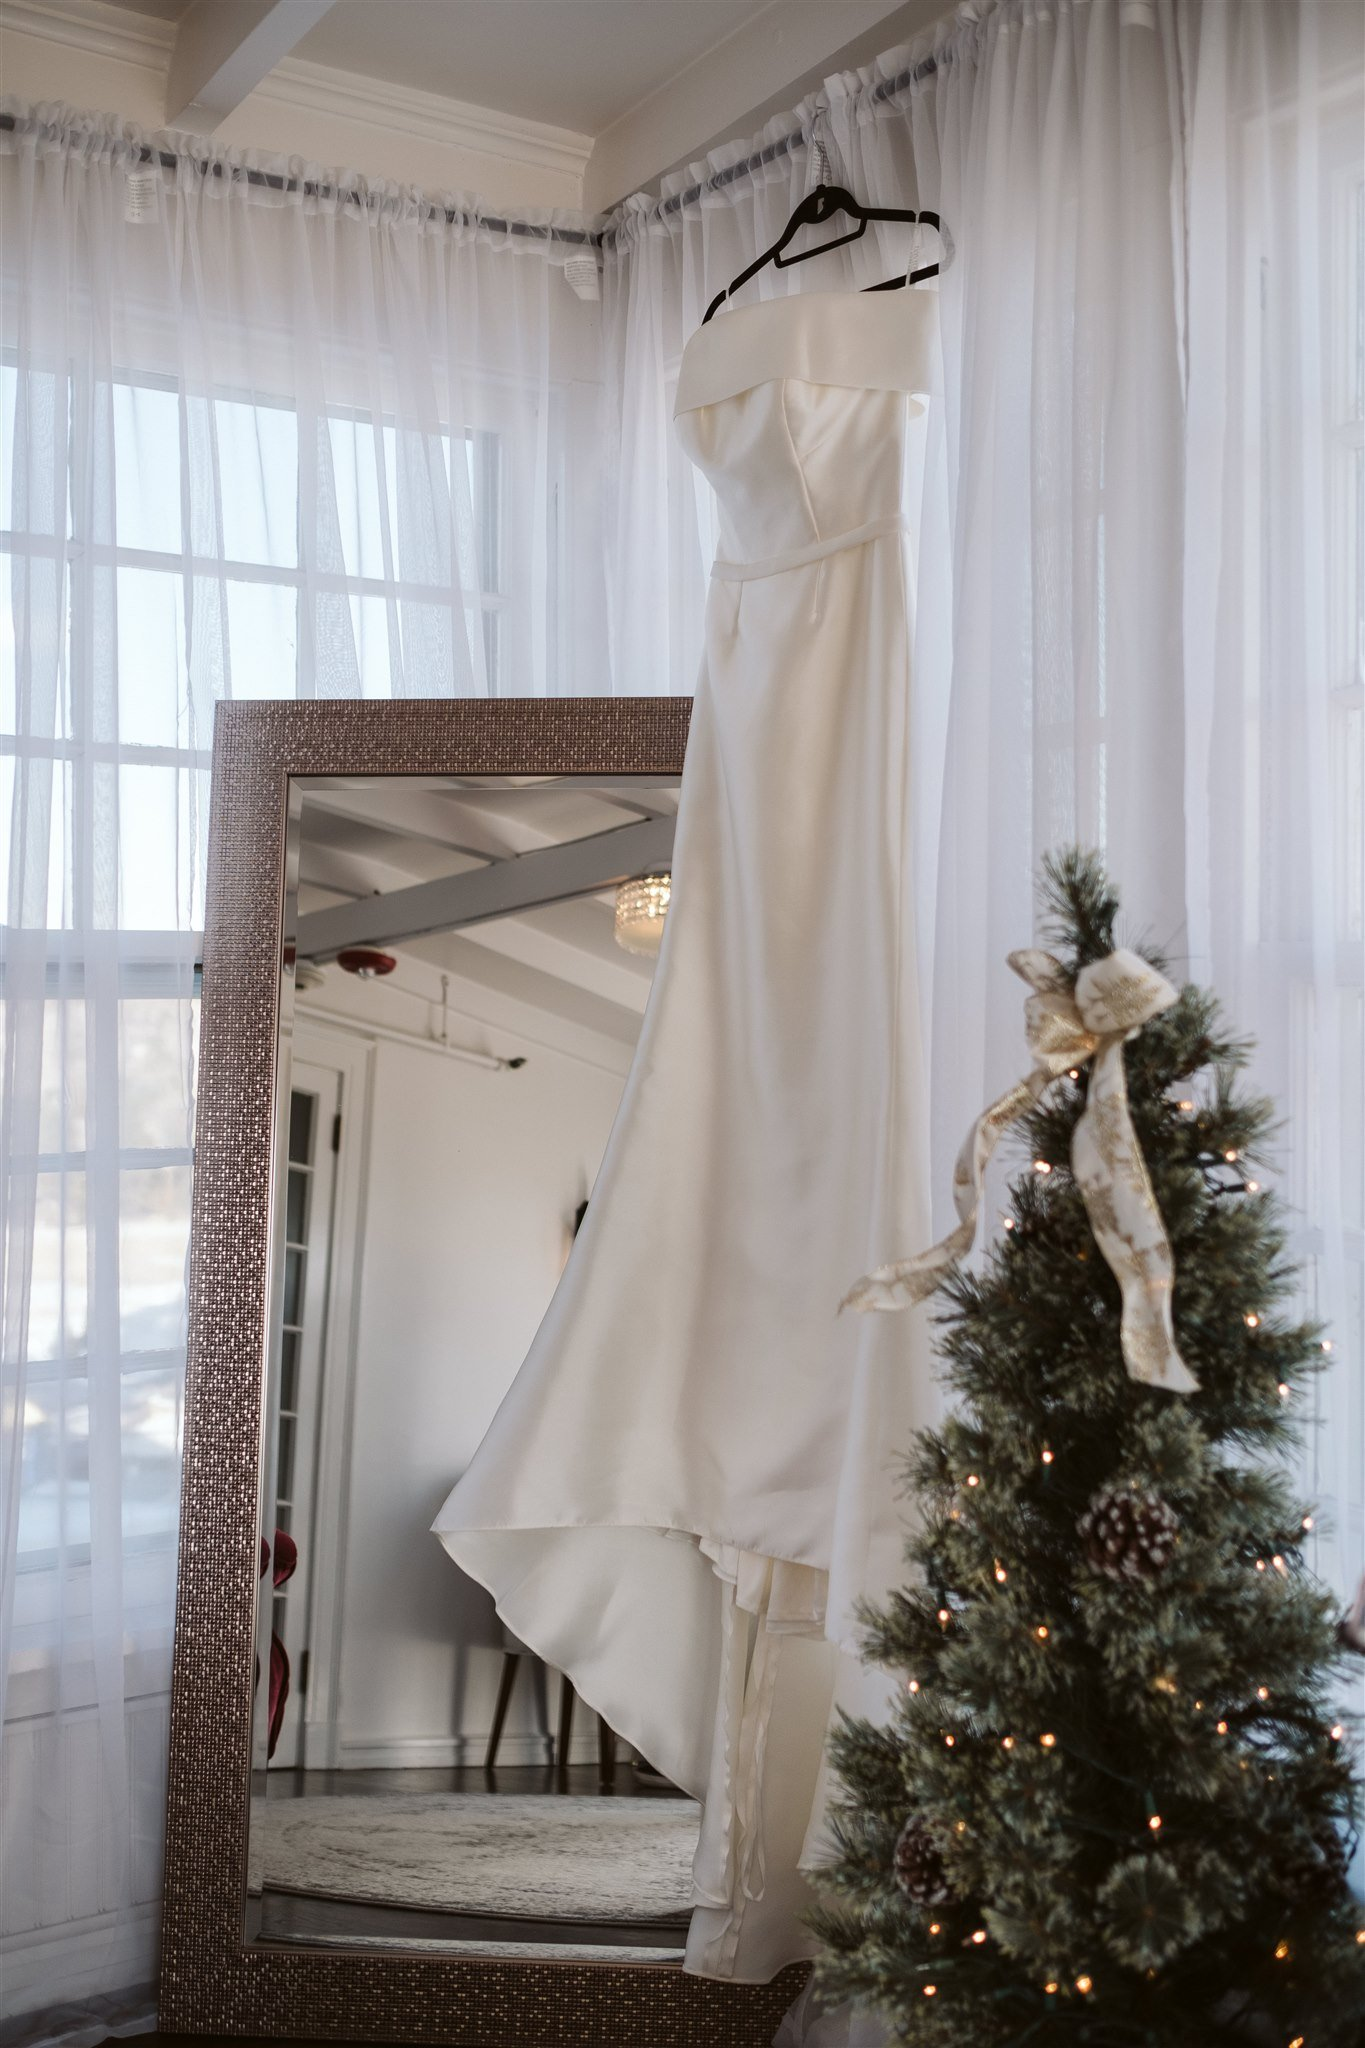 Classic satin wedding dress hanging next to Christmas tree